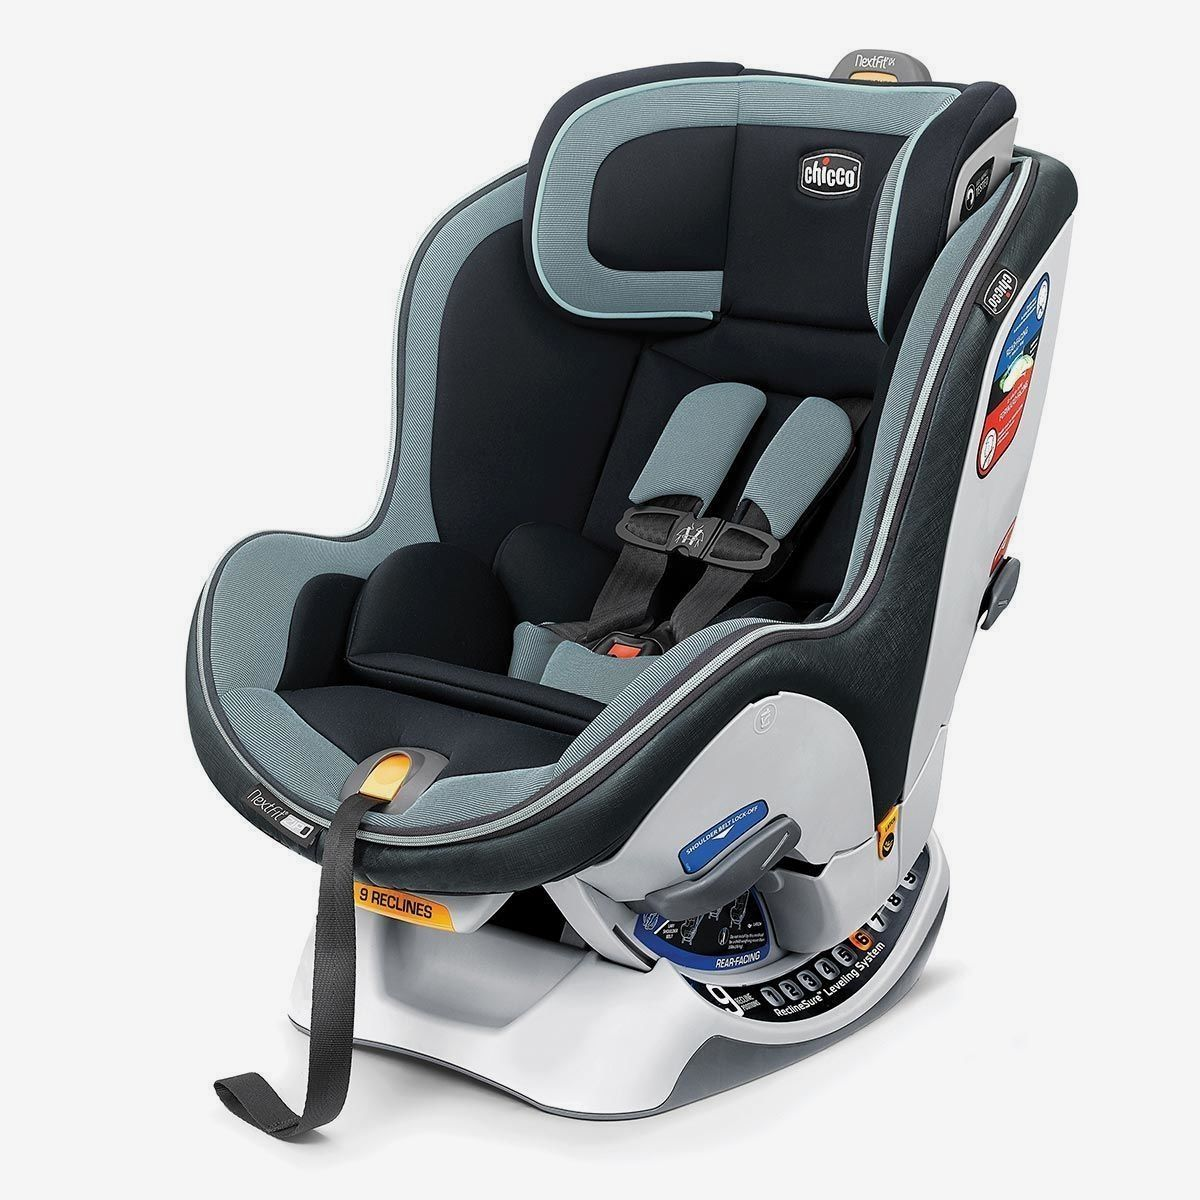 Car Seat Harness Strapsbest Seats Best Convertible Britax Advocate Review Roundabout Reviebest